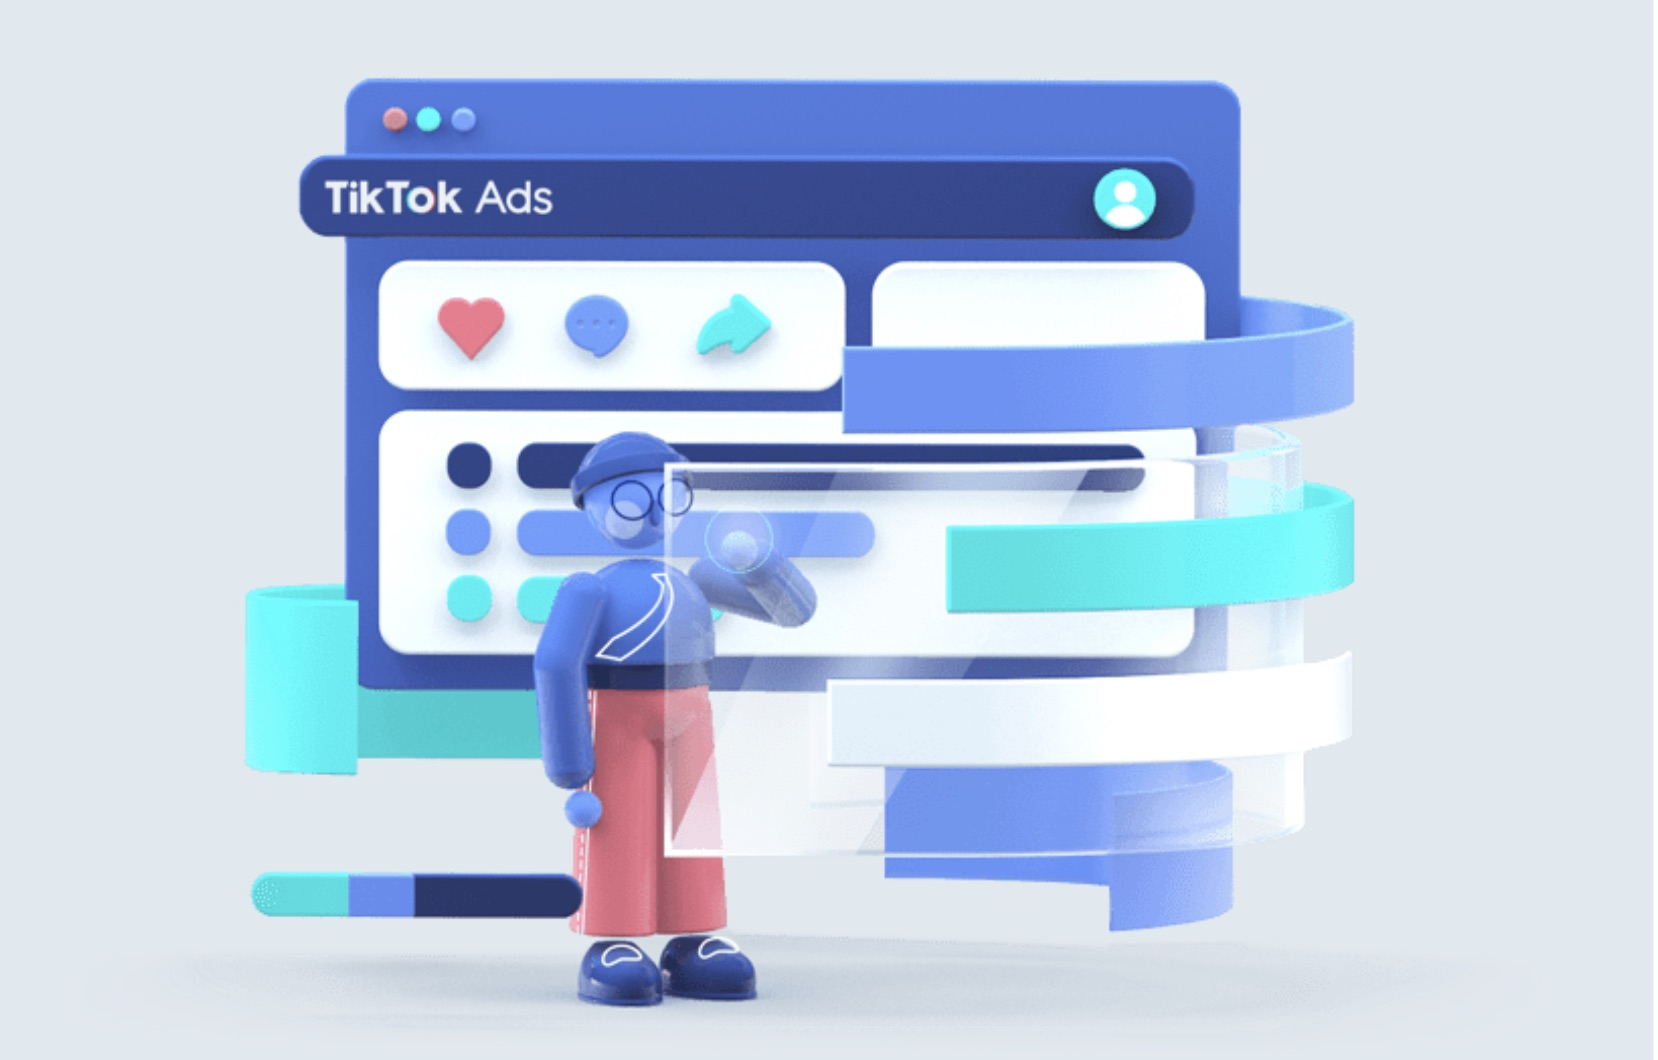 TikTok Marketing: A New Avenue For Business Promotion